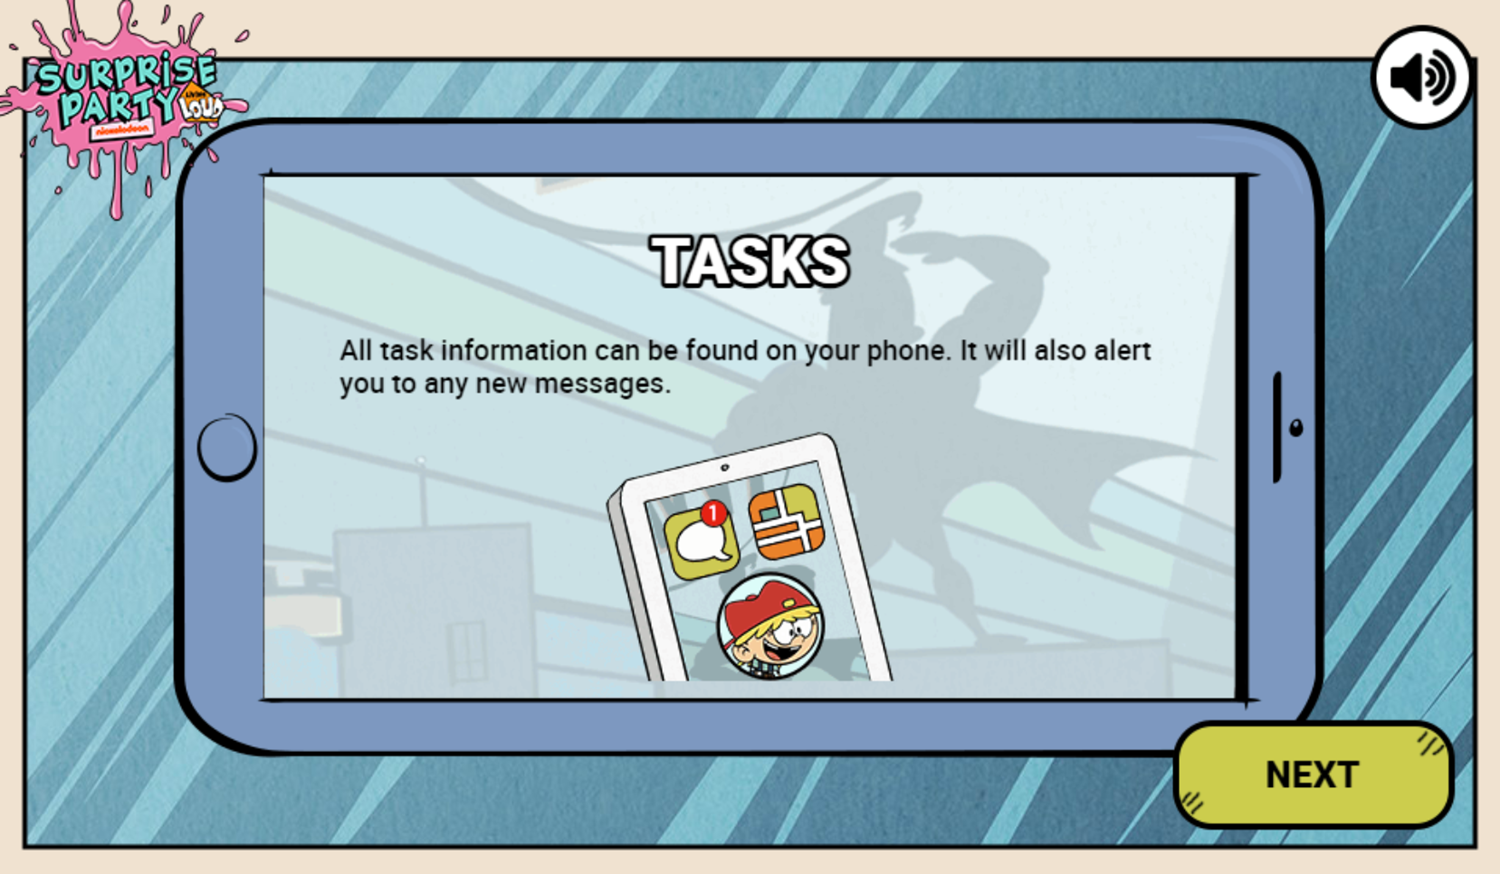 Loud House Surprise Party Game Play Tips Screenshot.